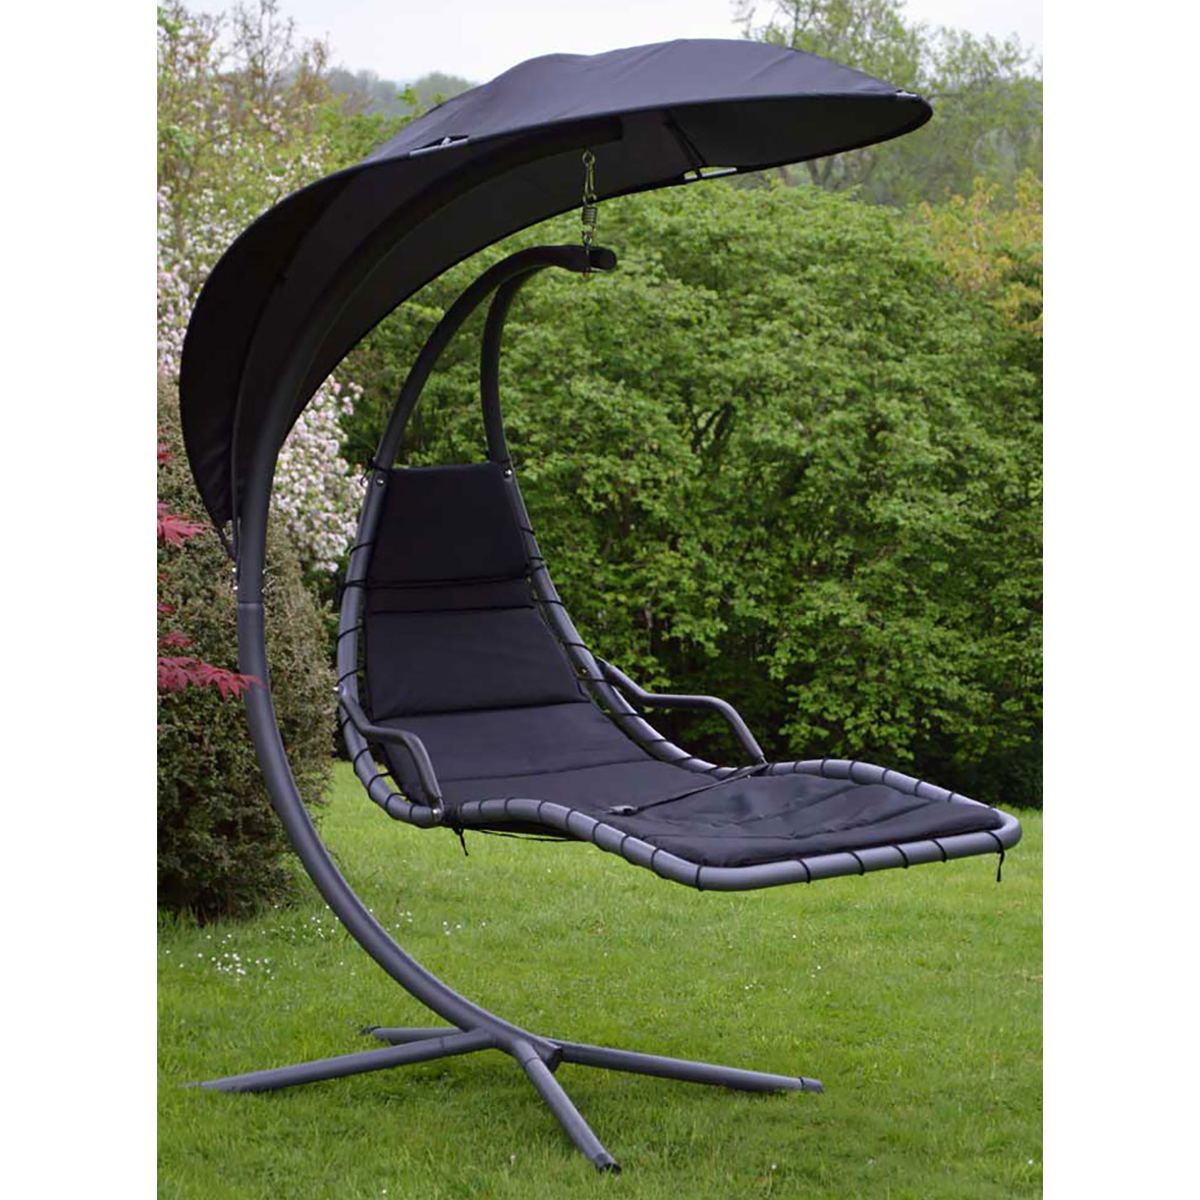 charles bentley garden helicopter patio swing chair seat - Patio Swing Chair